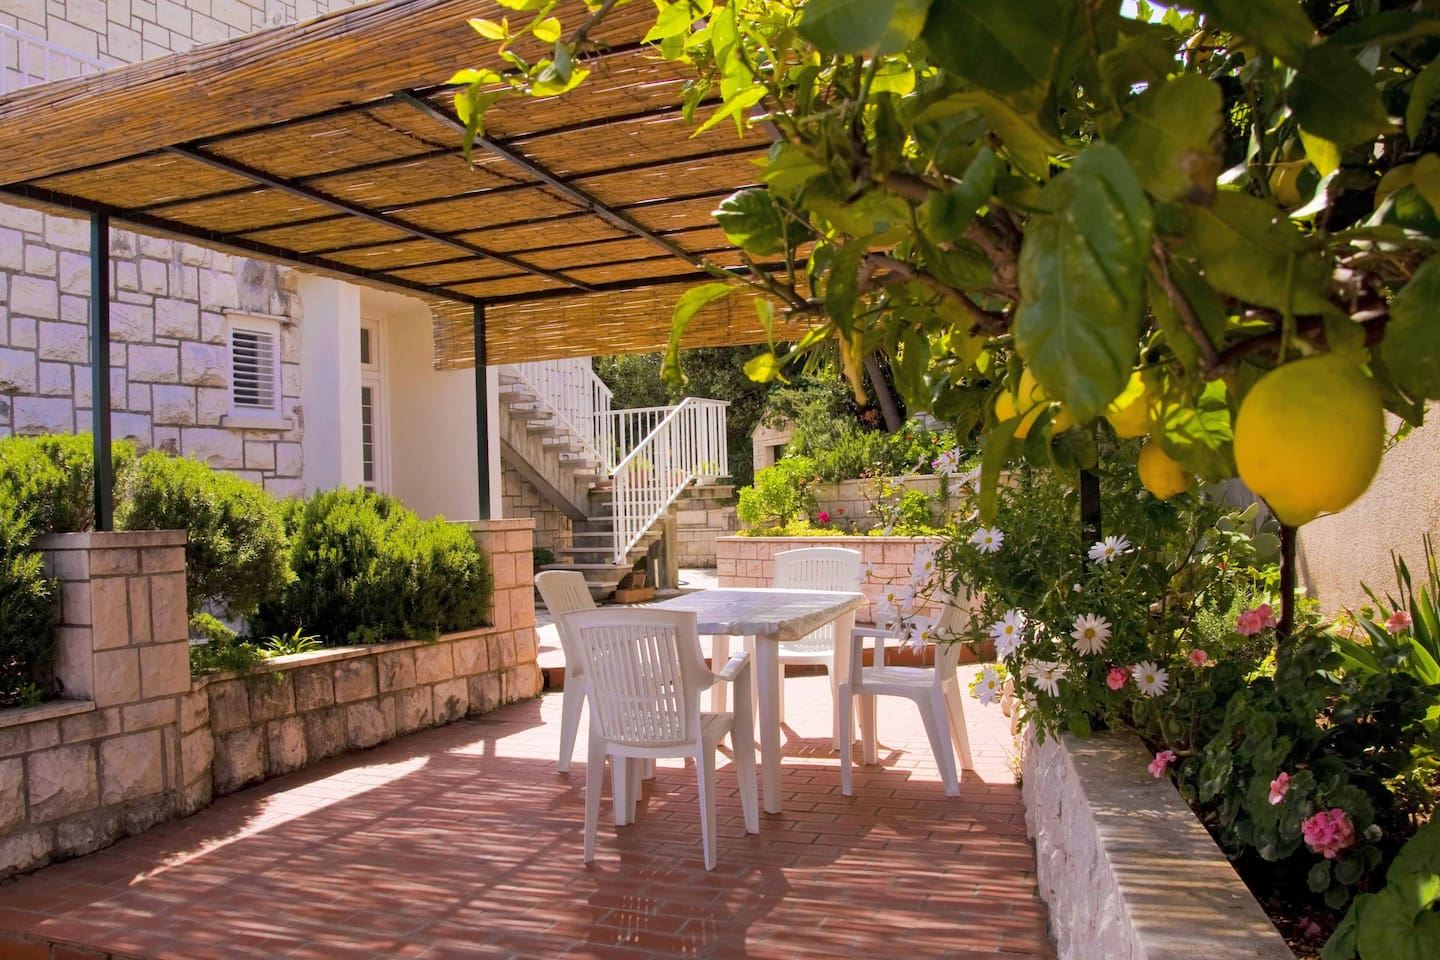 Apartment with Mediterranean garden terrace - Apartments for Rent in ...